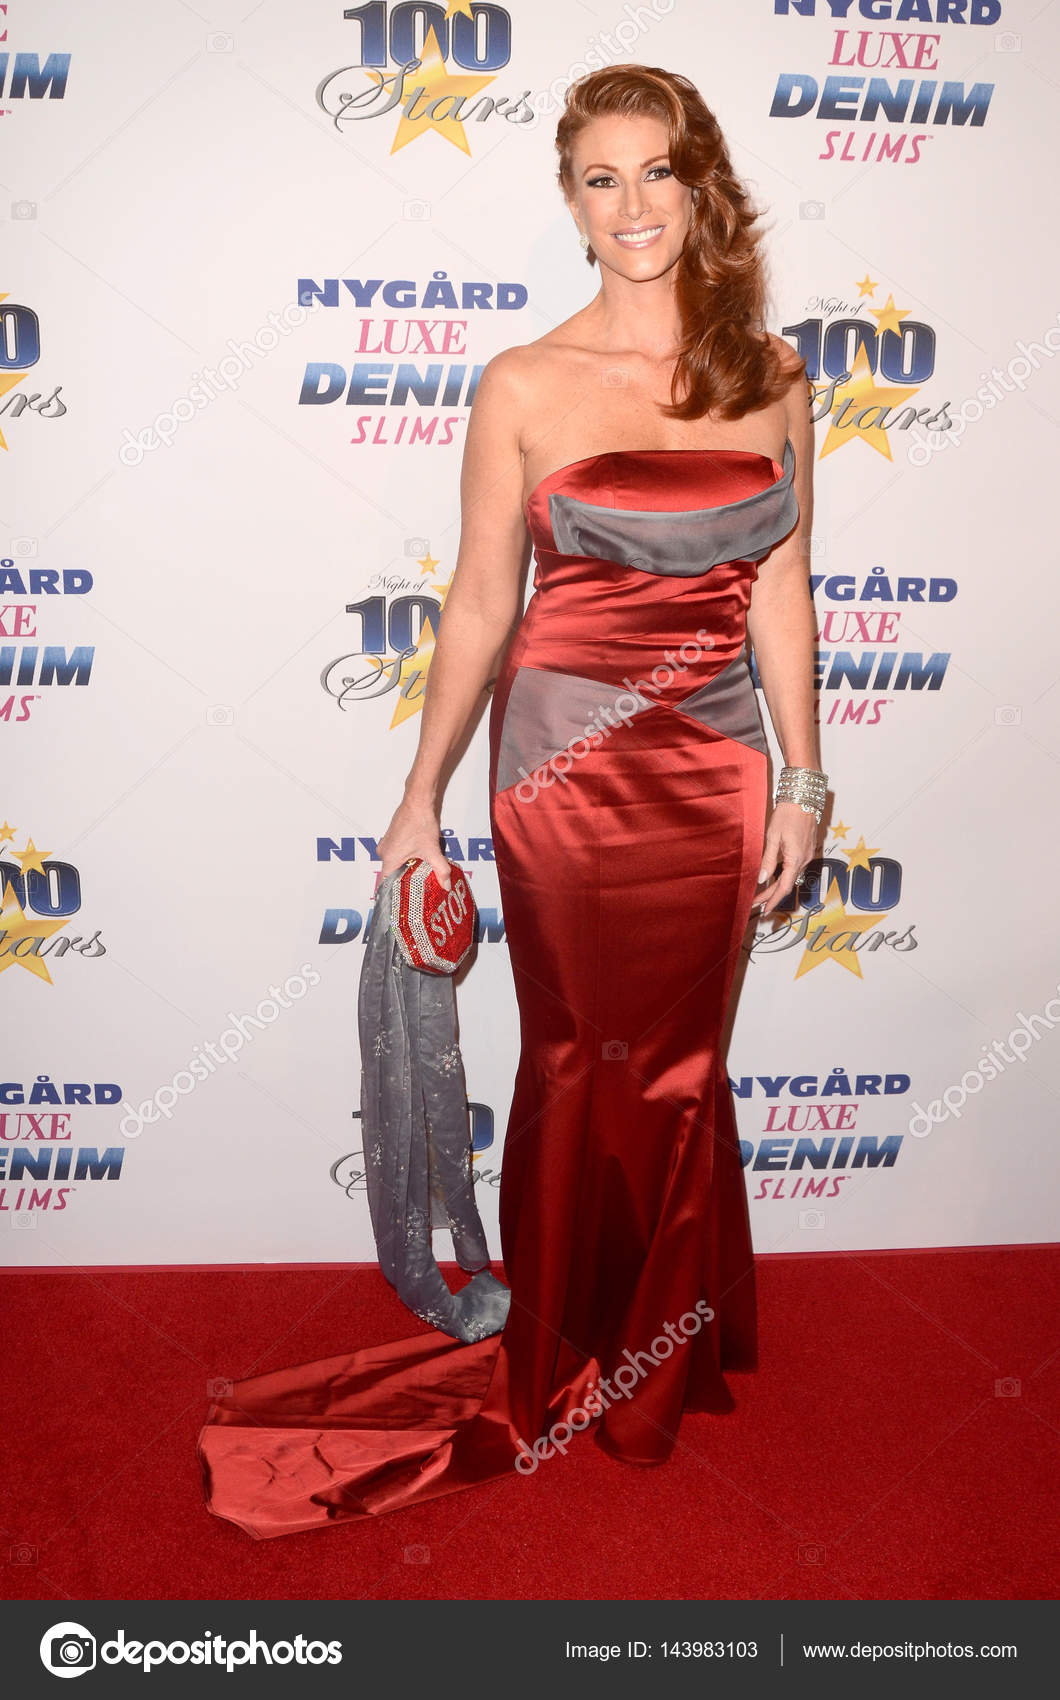 actress angie everhart – stock editorial photo © jean_nelson #143983103